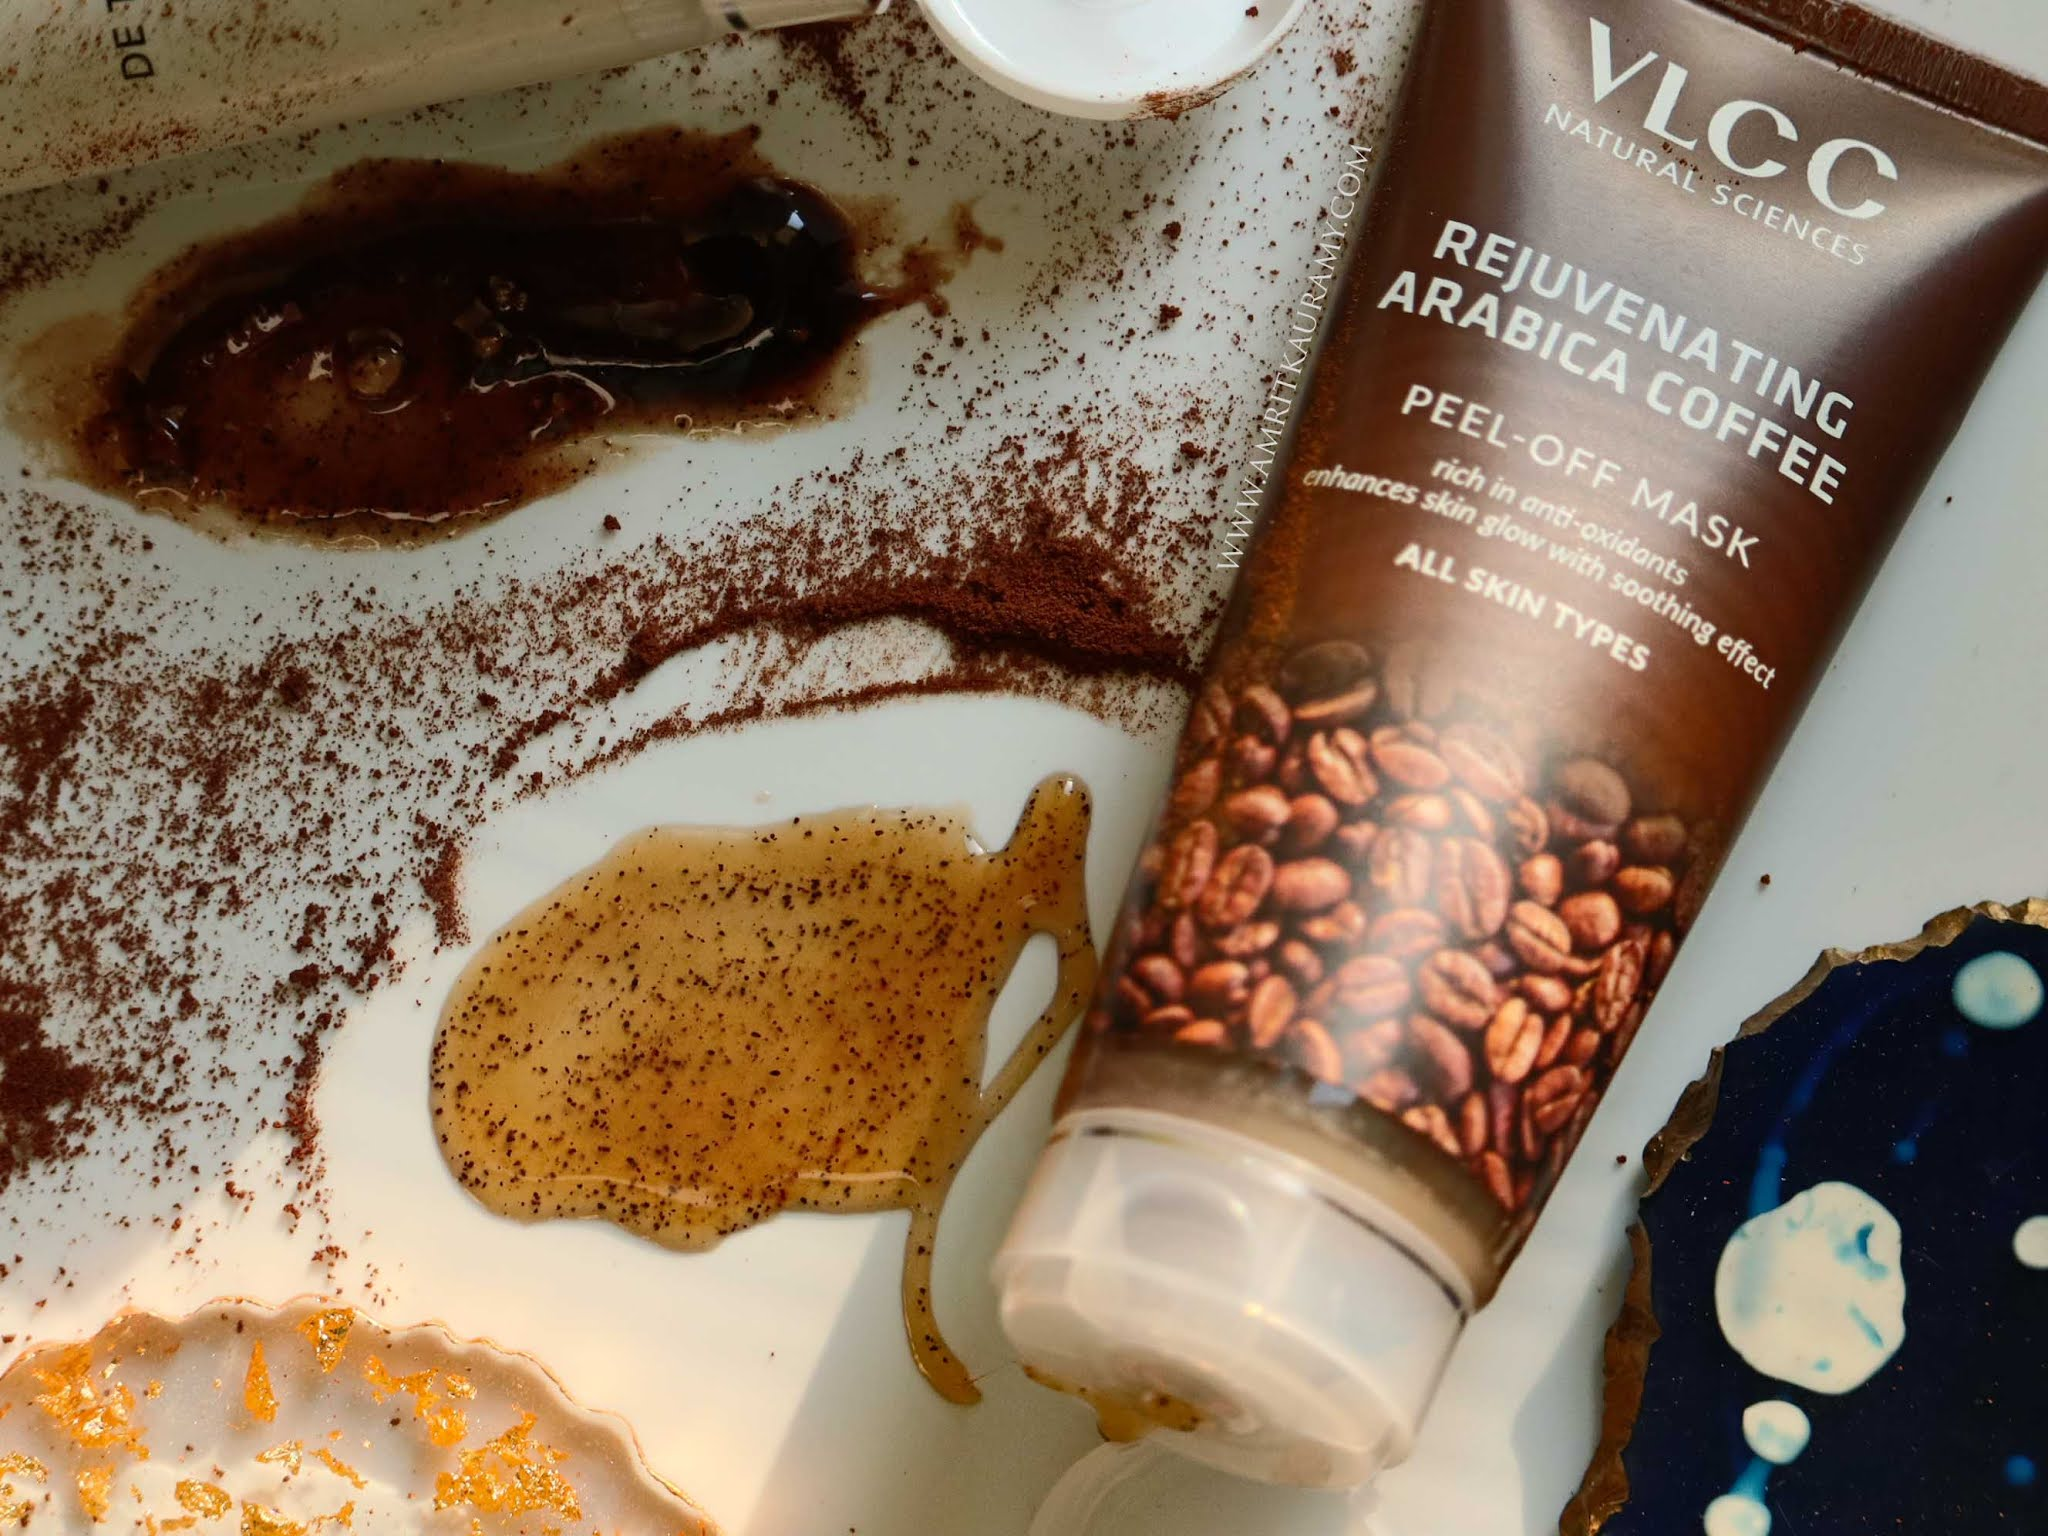 VLCC Arabica Coffee Peel-off Mask